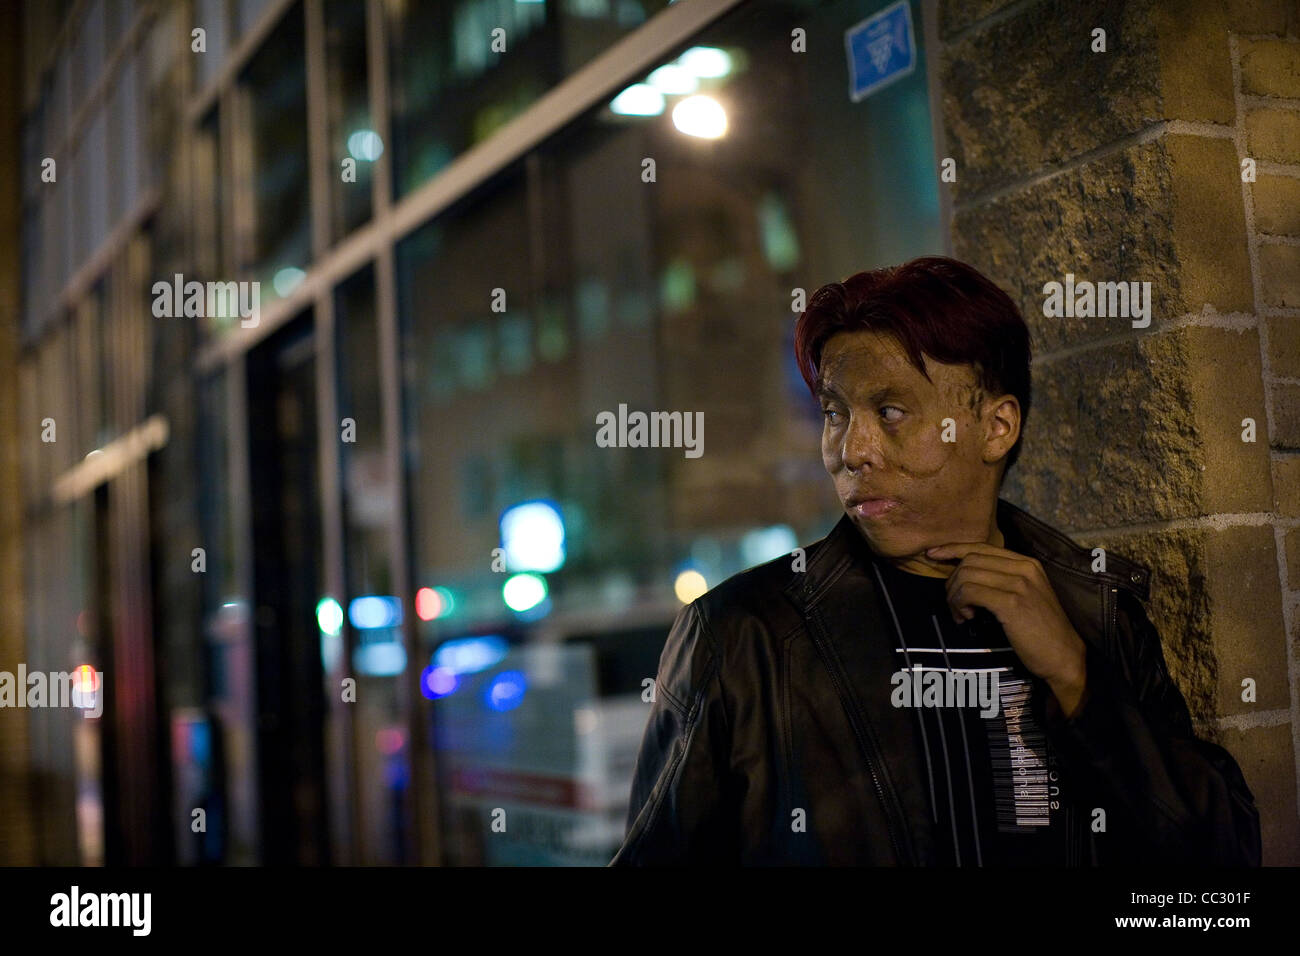 Crack addict on the streets of Montreal, Canada. - Stock Image